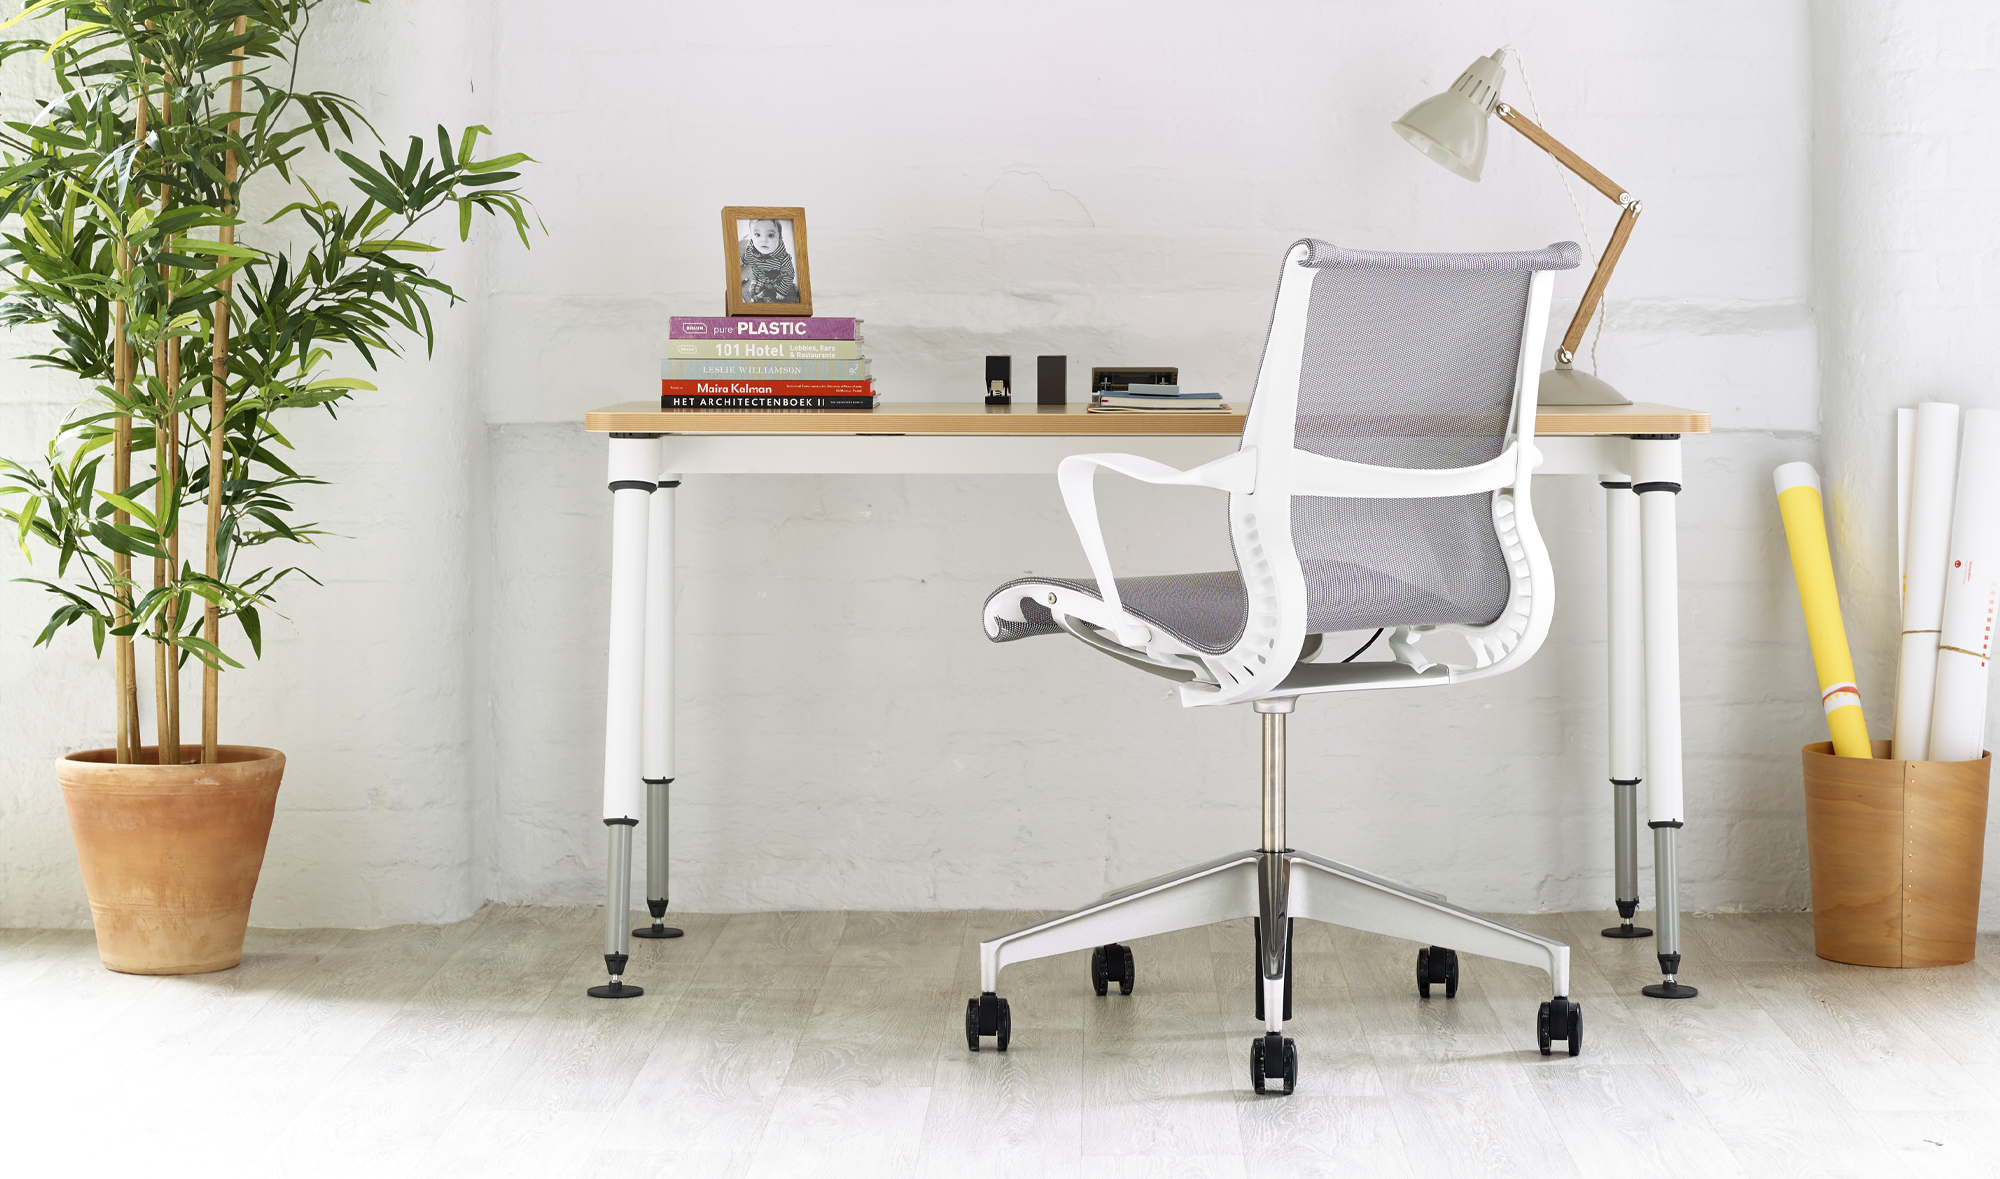 Grey Setu chair in a home office environment